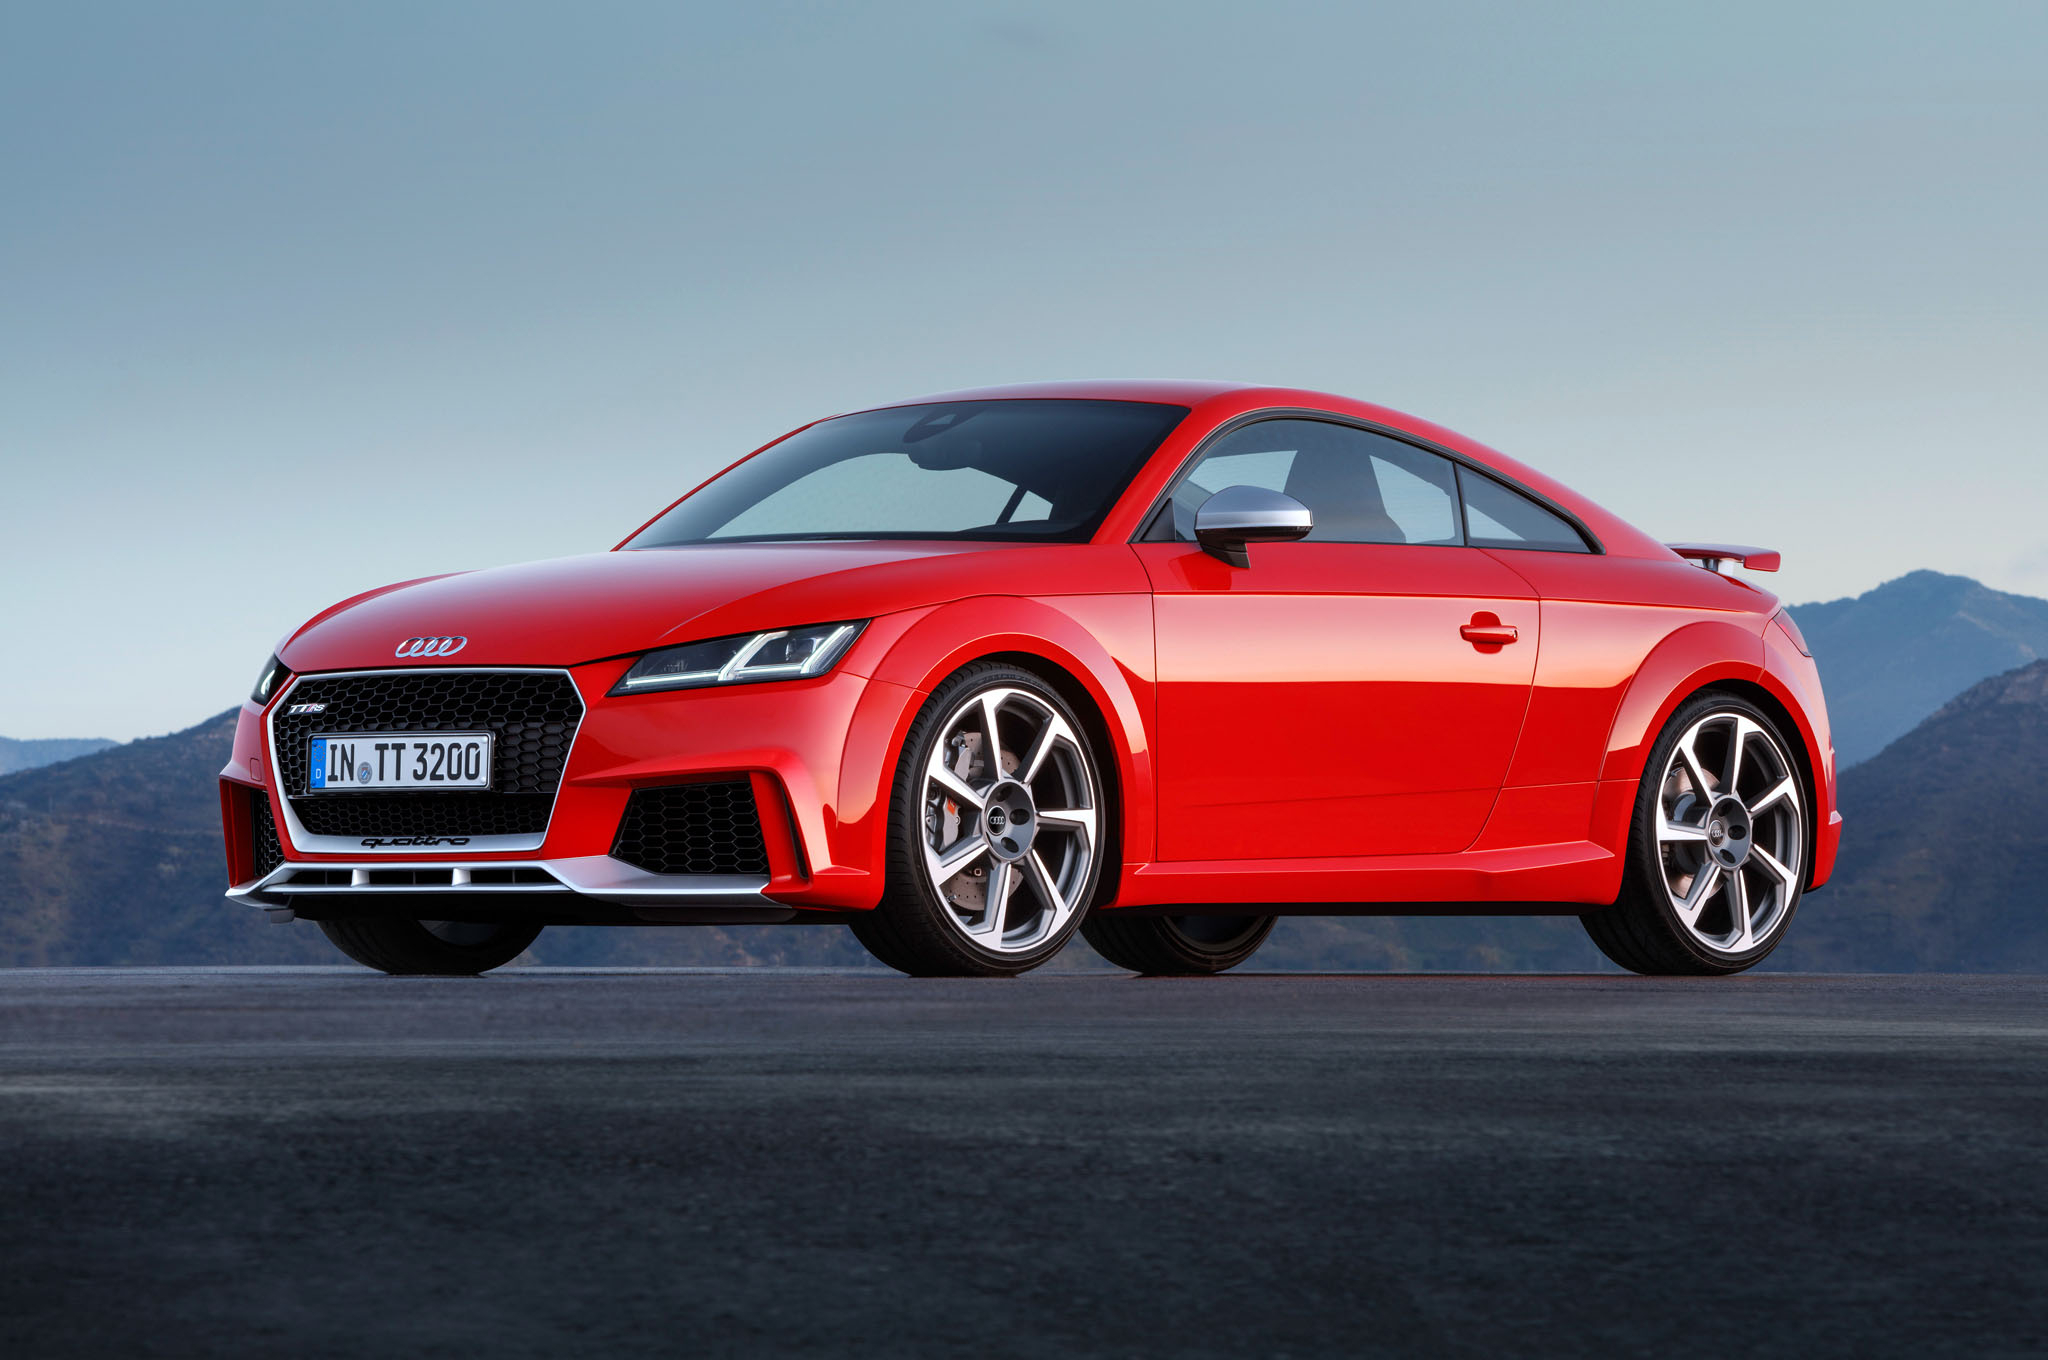 2017 Audi TT RS Coupe Background Wallpaper HD 2048x1360